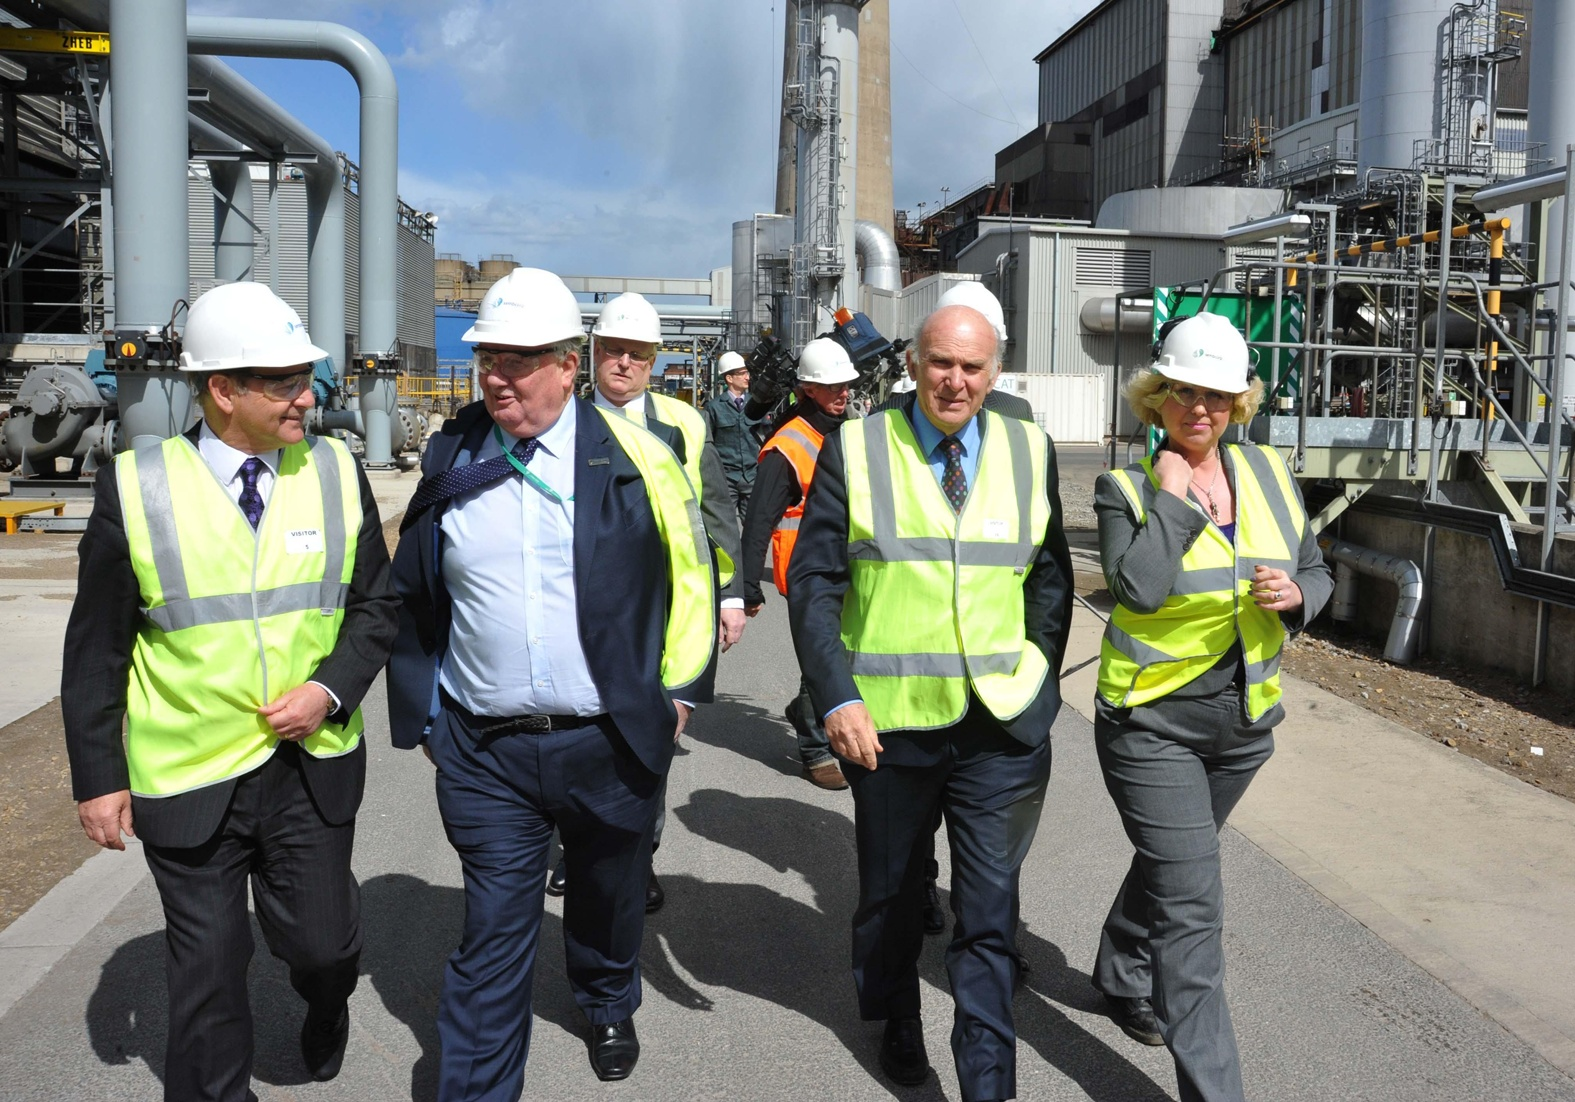 George Ritchie, Sembcorp senior vice-president HR, second left next to Business Secretary Dr Vince Cable, has called on more firms to look at apprenticeships